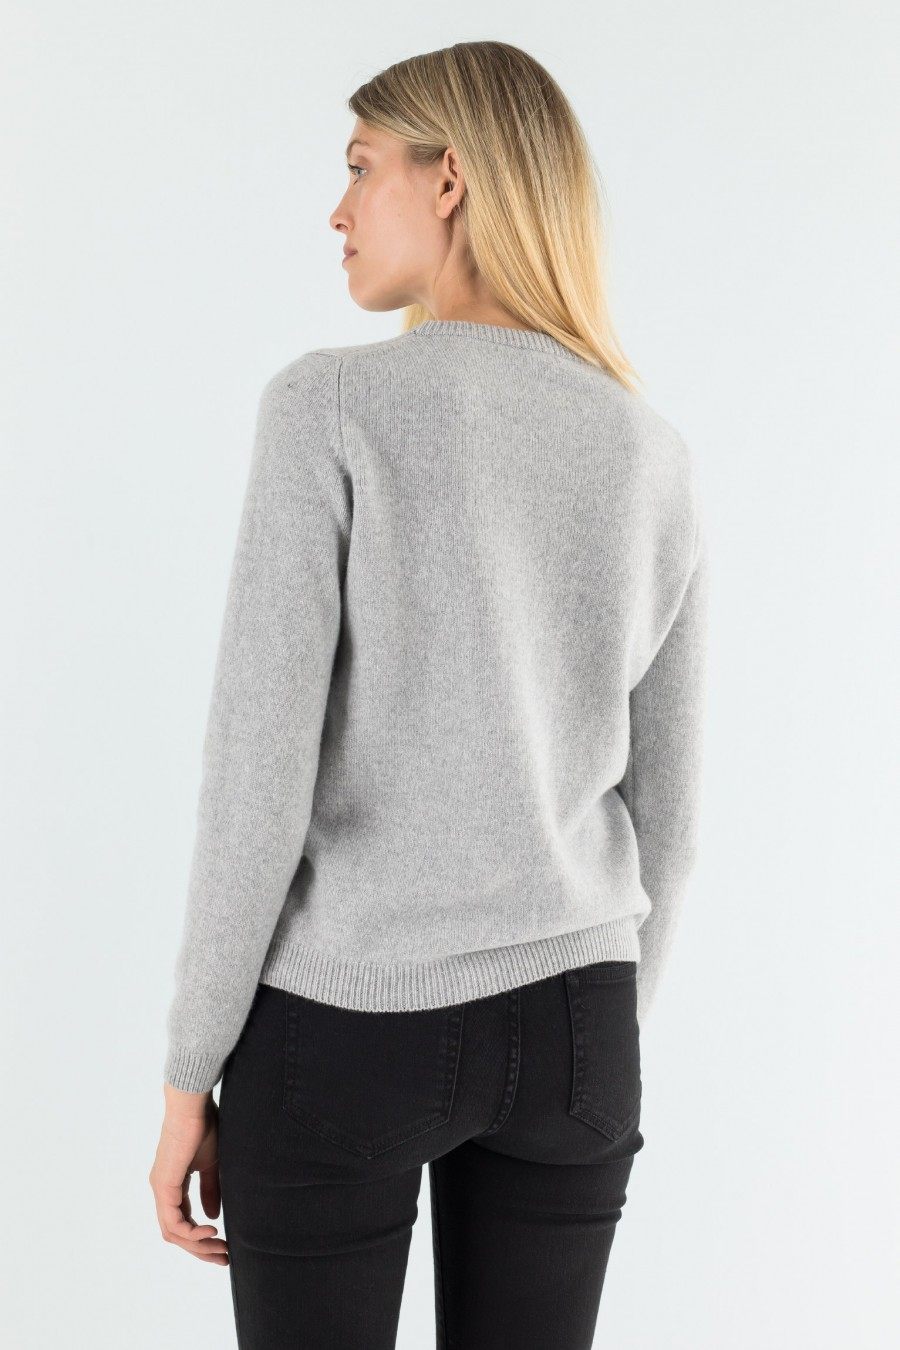 Soft and simple merino wool pullover